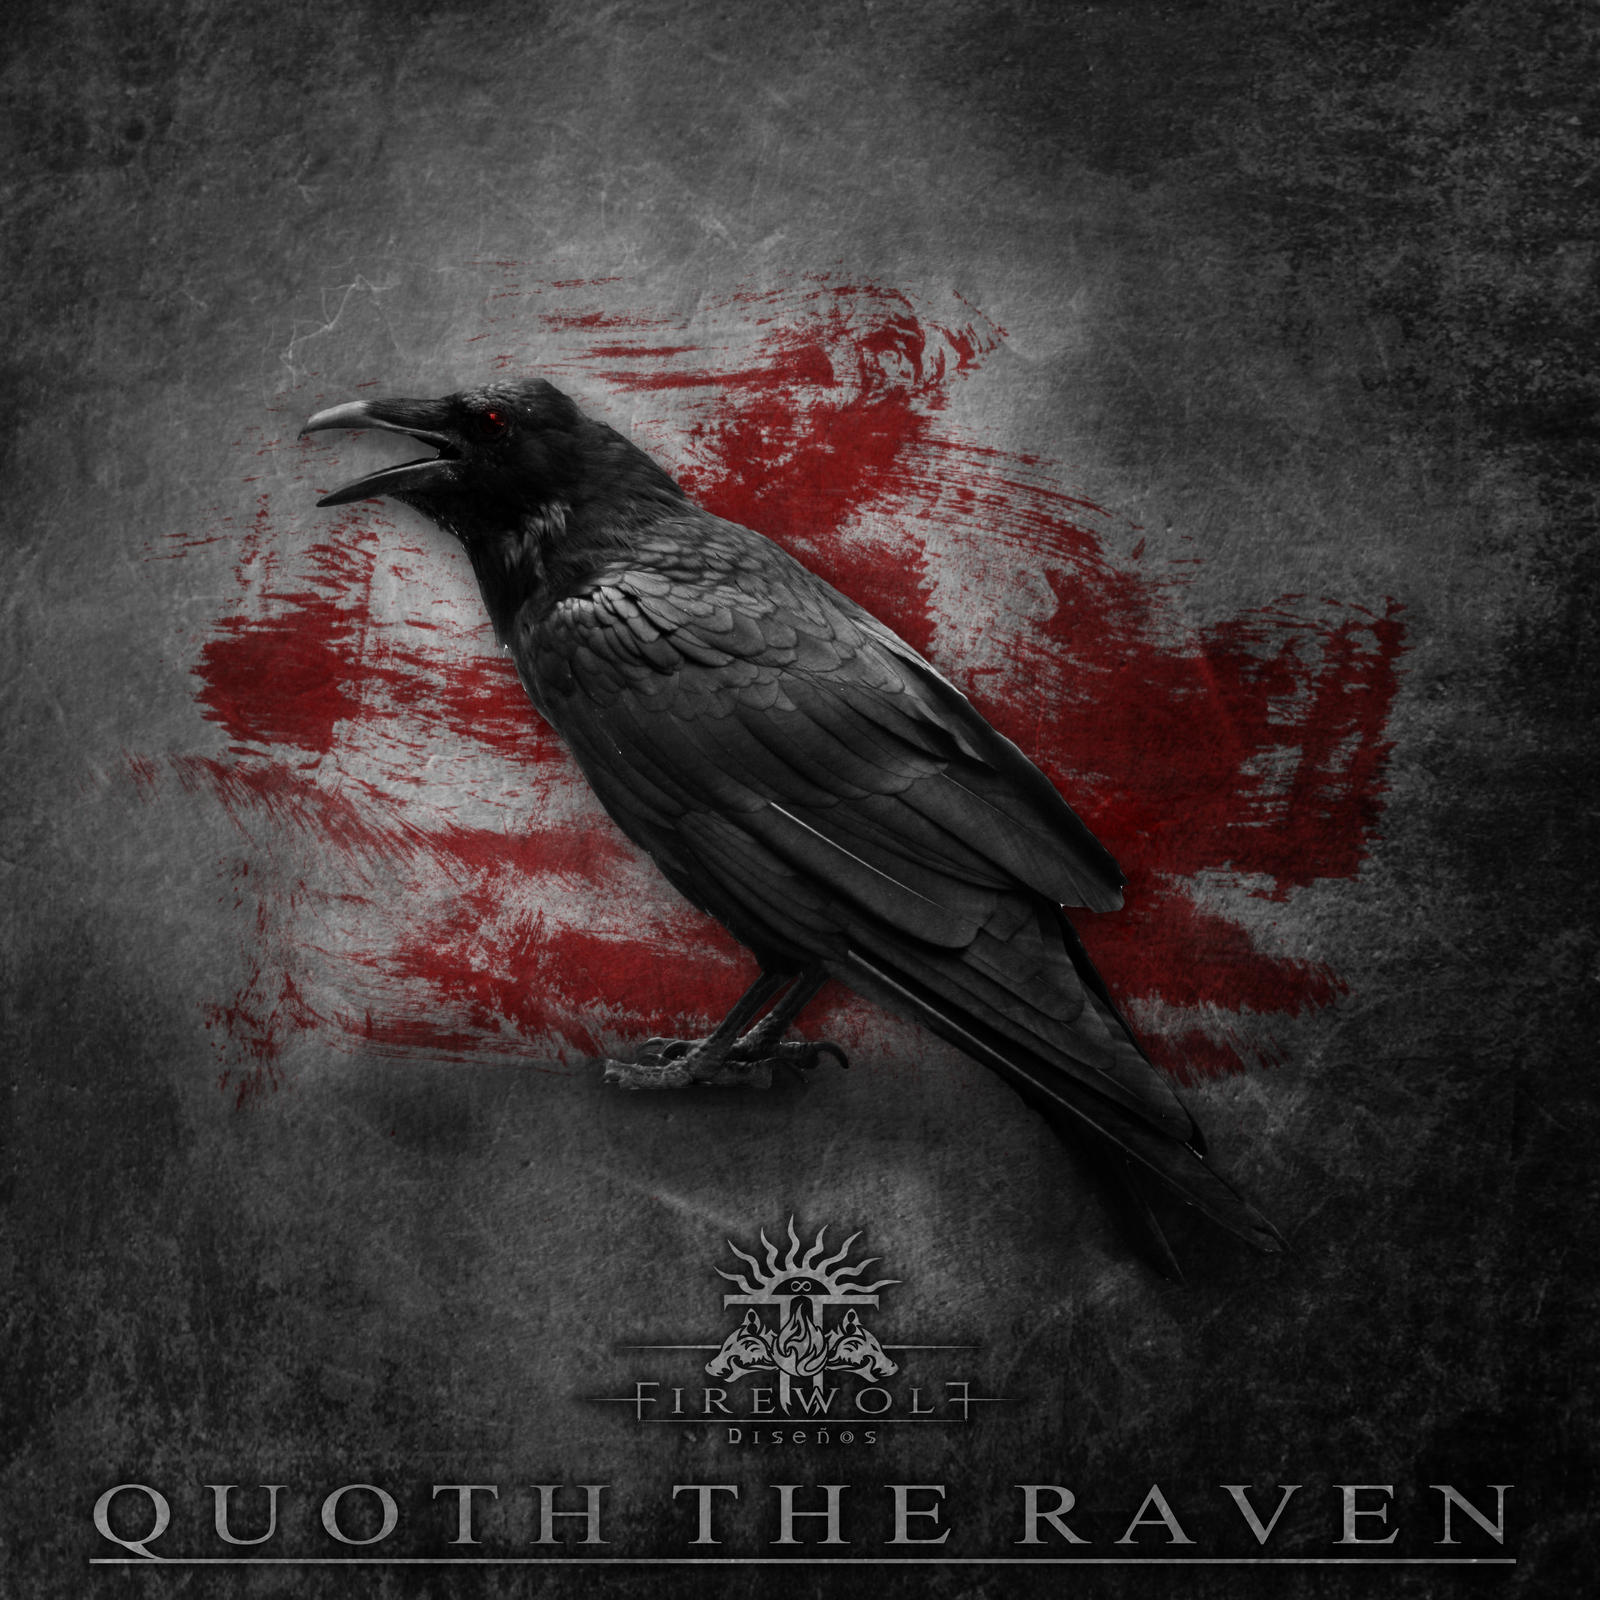 """quoth the raven the raven poem Our café-ku poem with the image of a raven head with a coffee bean in its beak on one side on the other side, an image of a raven perched on a coffee bean with the text """"quoth the raven, pour some."""